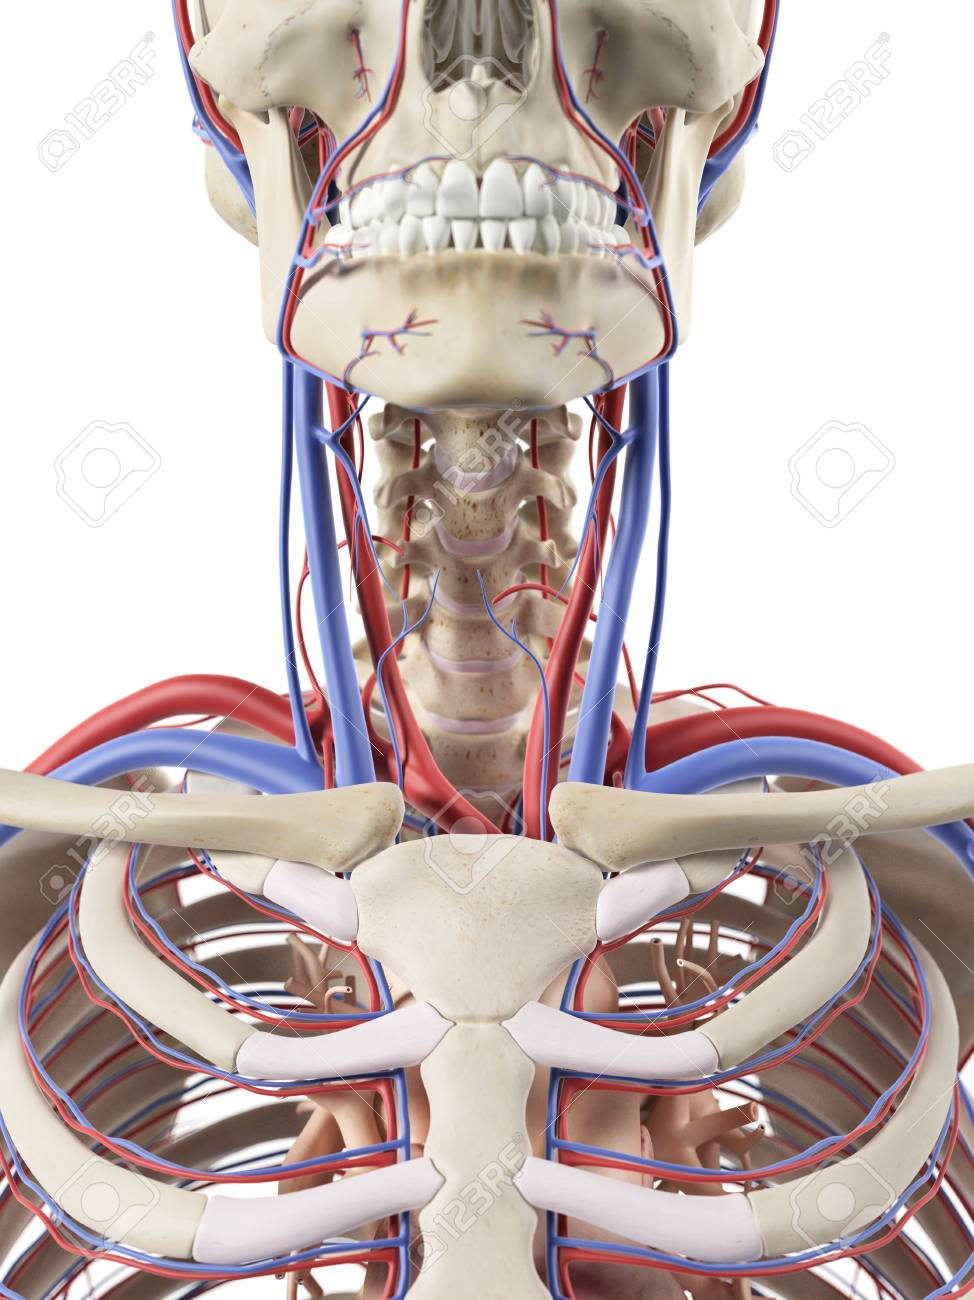 Blood Vessels In The Neck Artwork Stock Photo Picture And Royalty